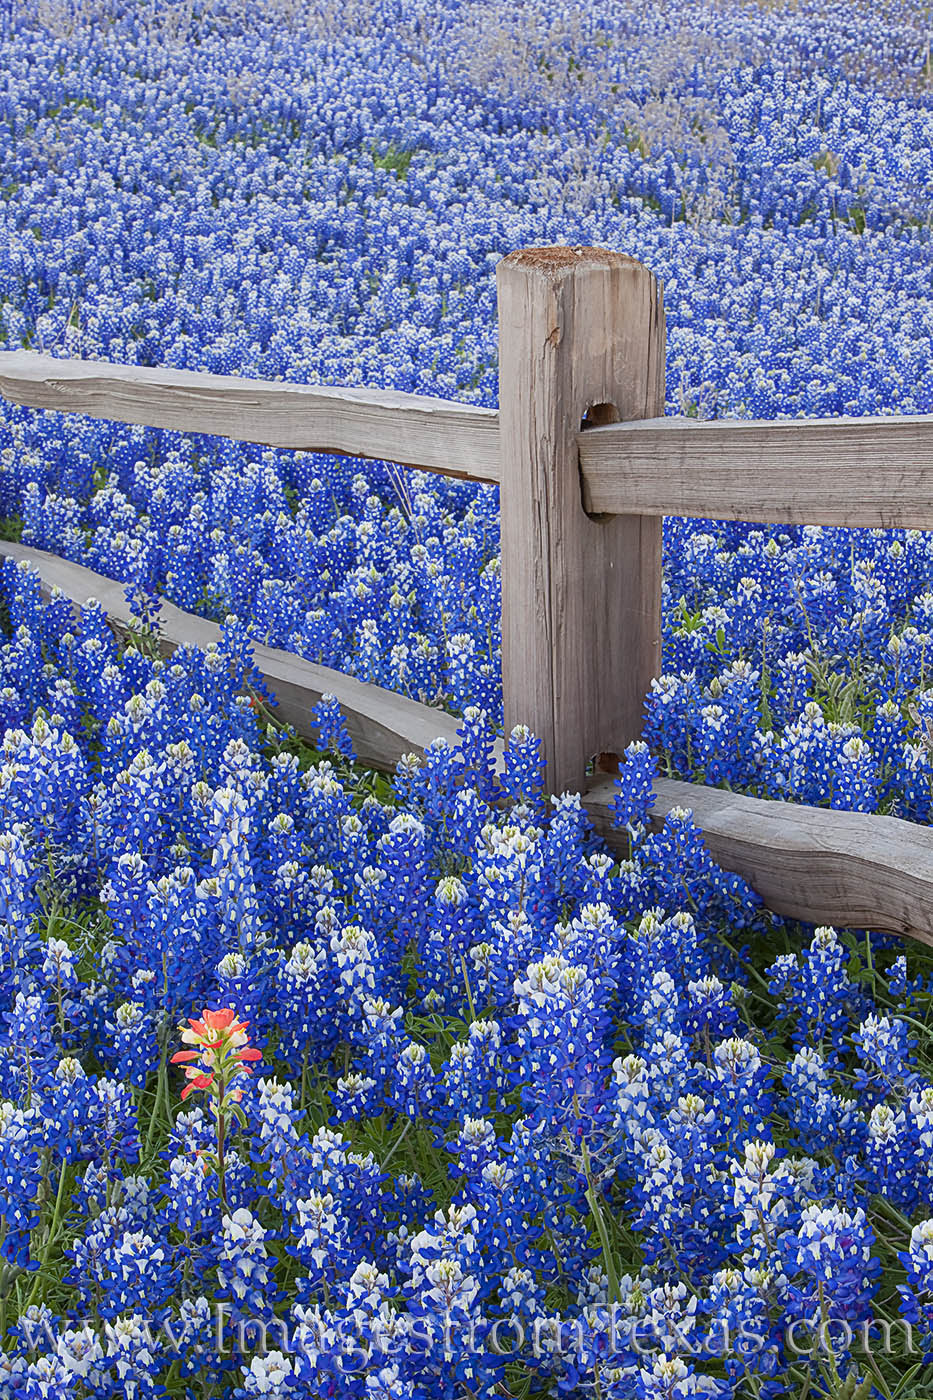 bluebonnets, paintbrush, fence, wooden fence, hill country, texas hill country, wildflowers, texas wildflowers, texas bluebonnets, blue flowers, photo